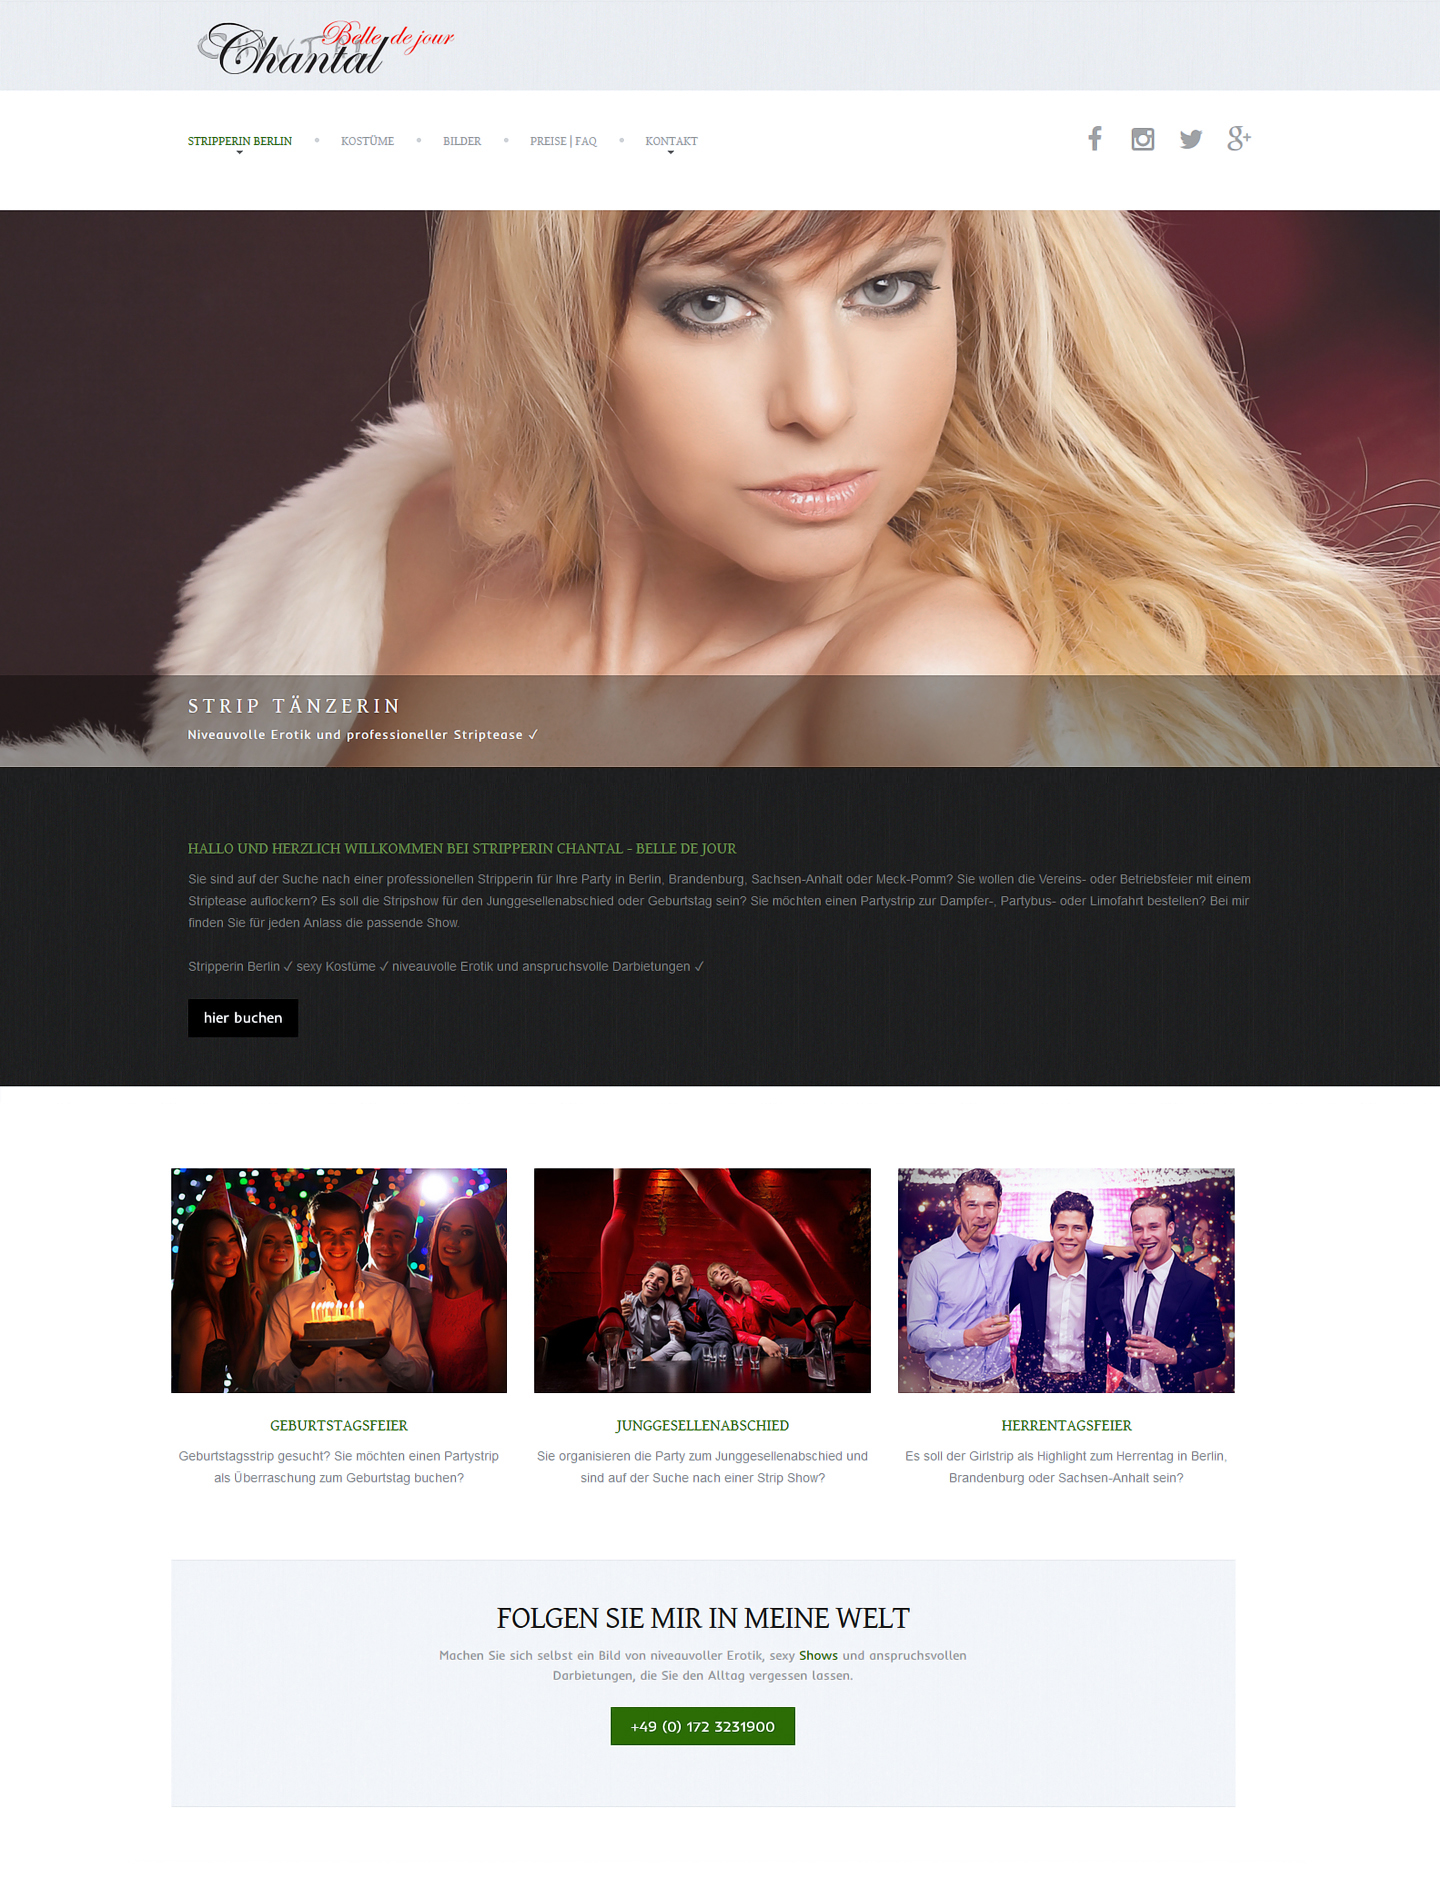 Chantal - Belle de jour » Website Erstellung by J.R. Foto, Web & Design